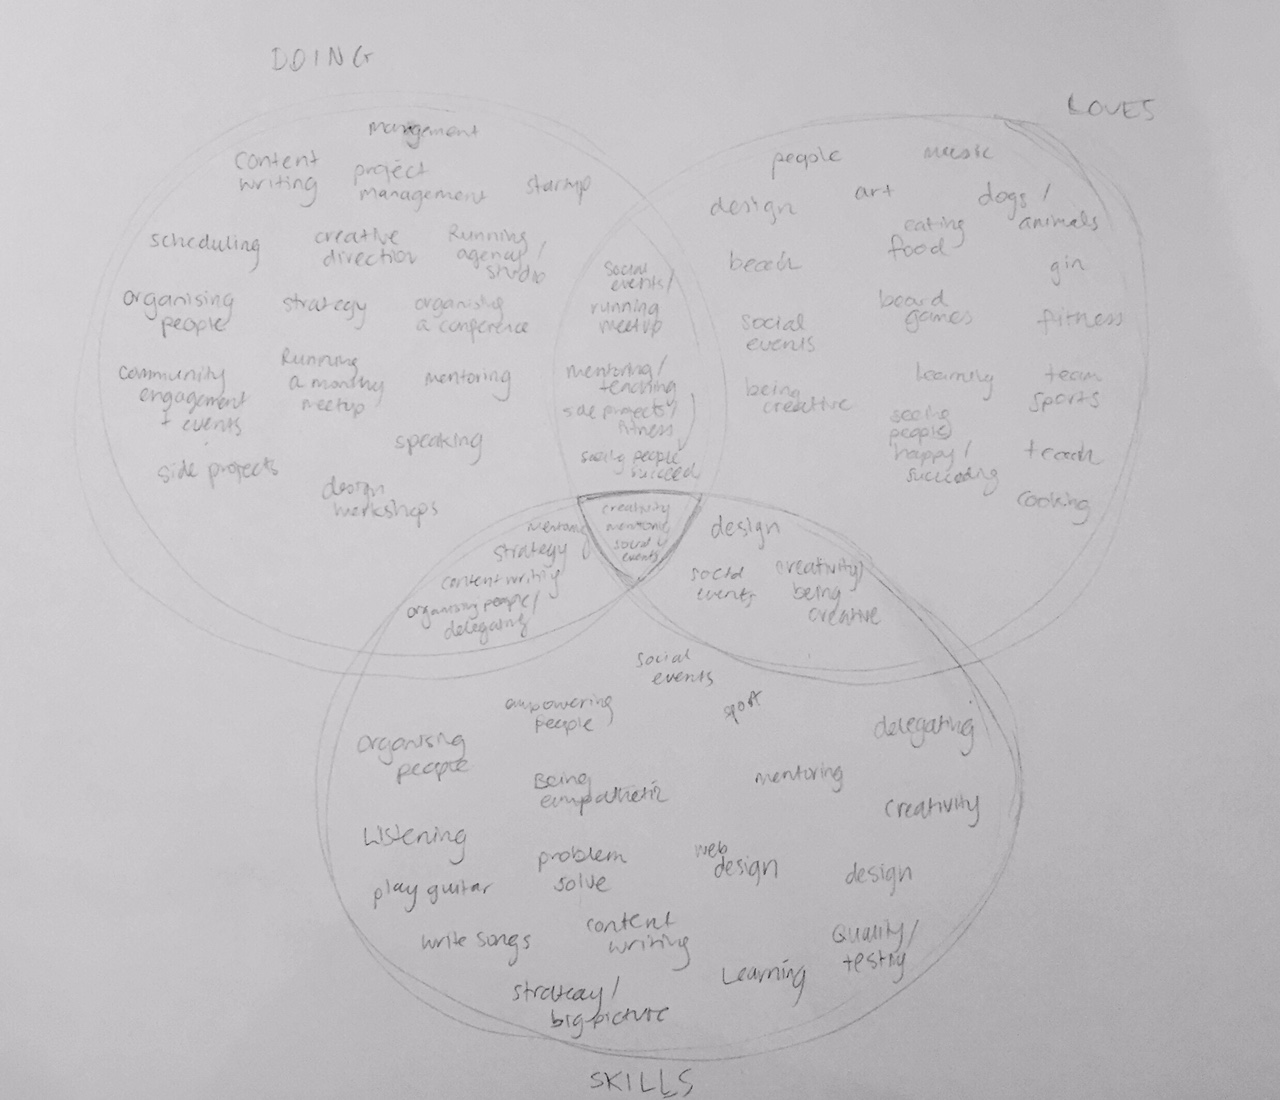 Venn diagram sketch